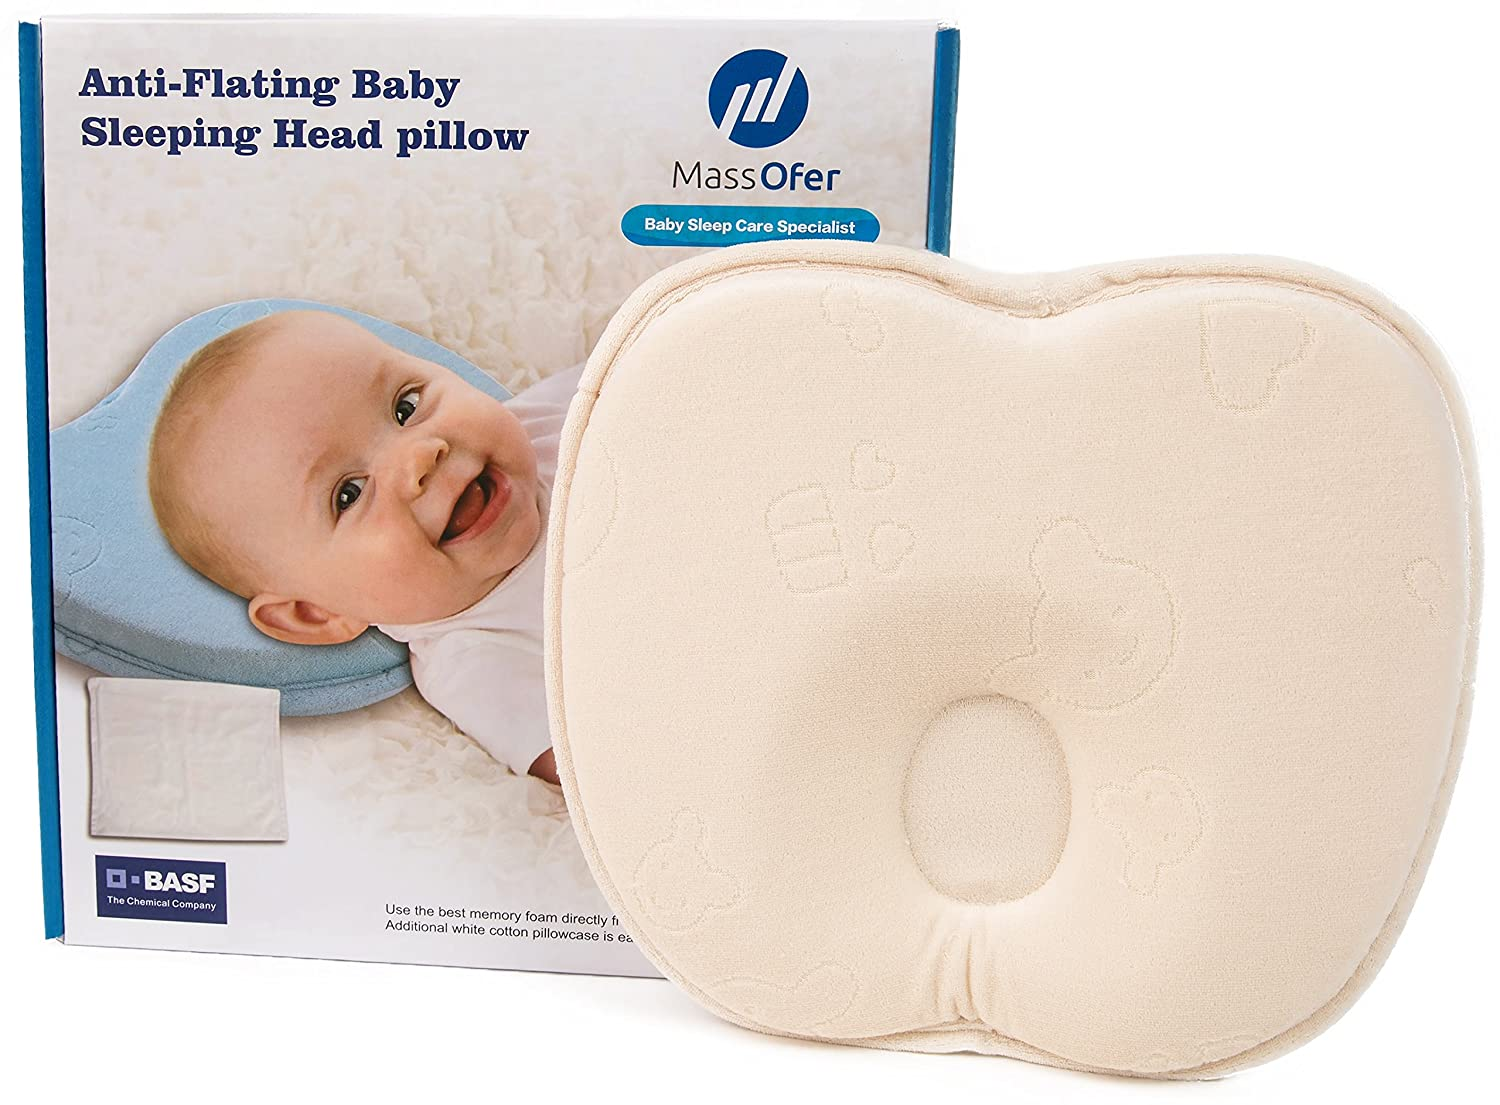 Baby pillow for newporn with pillow cases, Make with Memory Foam Protector and friendly Massofer